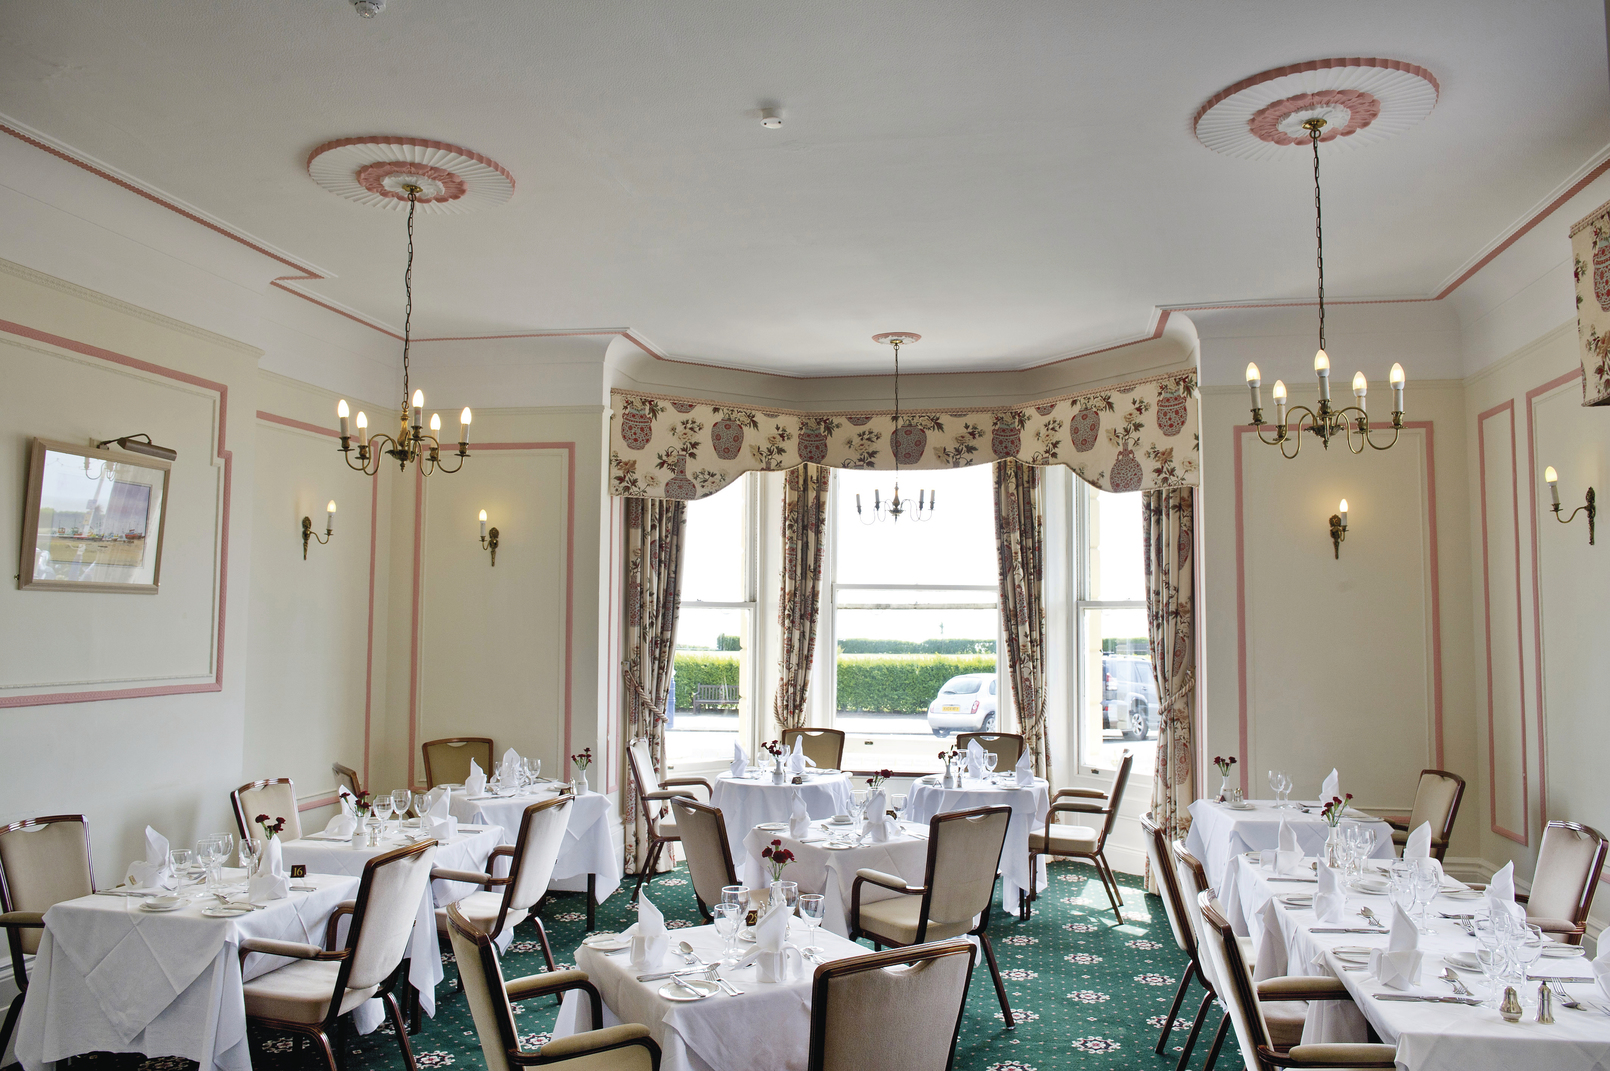 BW Lansdowne Hotel, The Devonshire Restaurant, Eastbourne - East Sussex